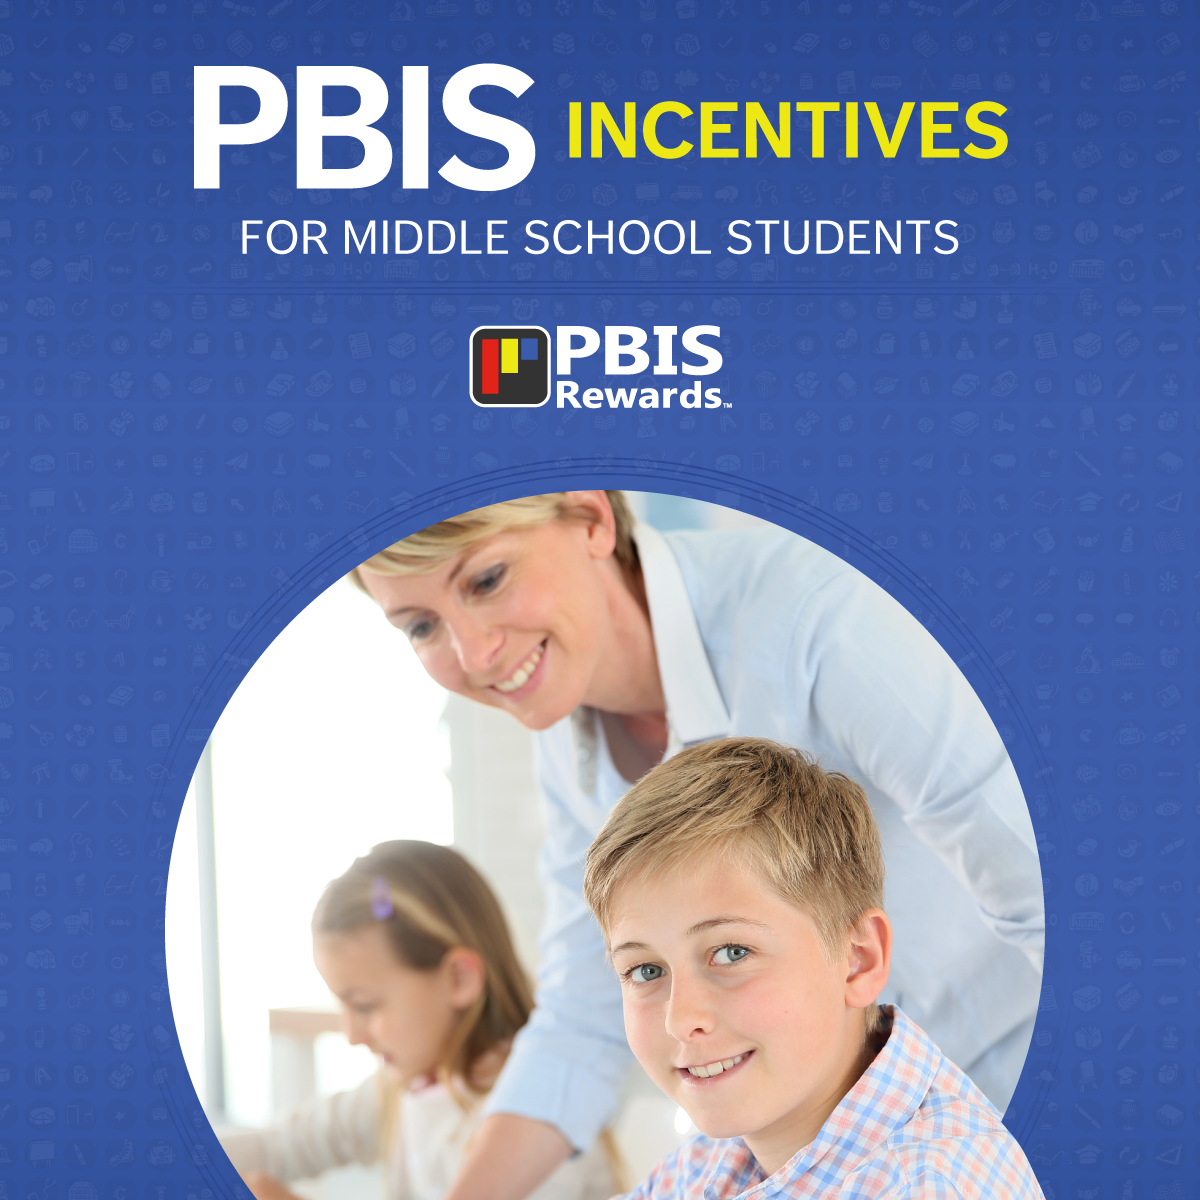 Classroom Incentive Ideas For Middle School : Pbis incentives for middle school students … pinteres…